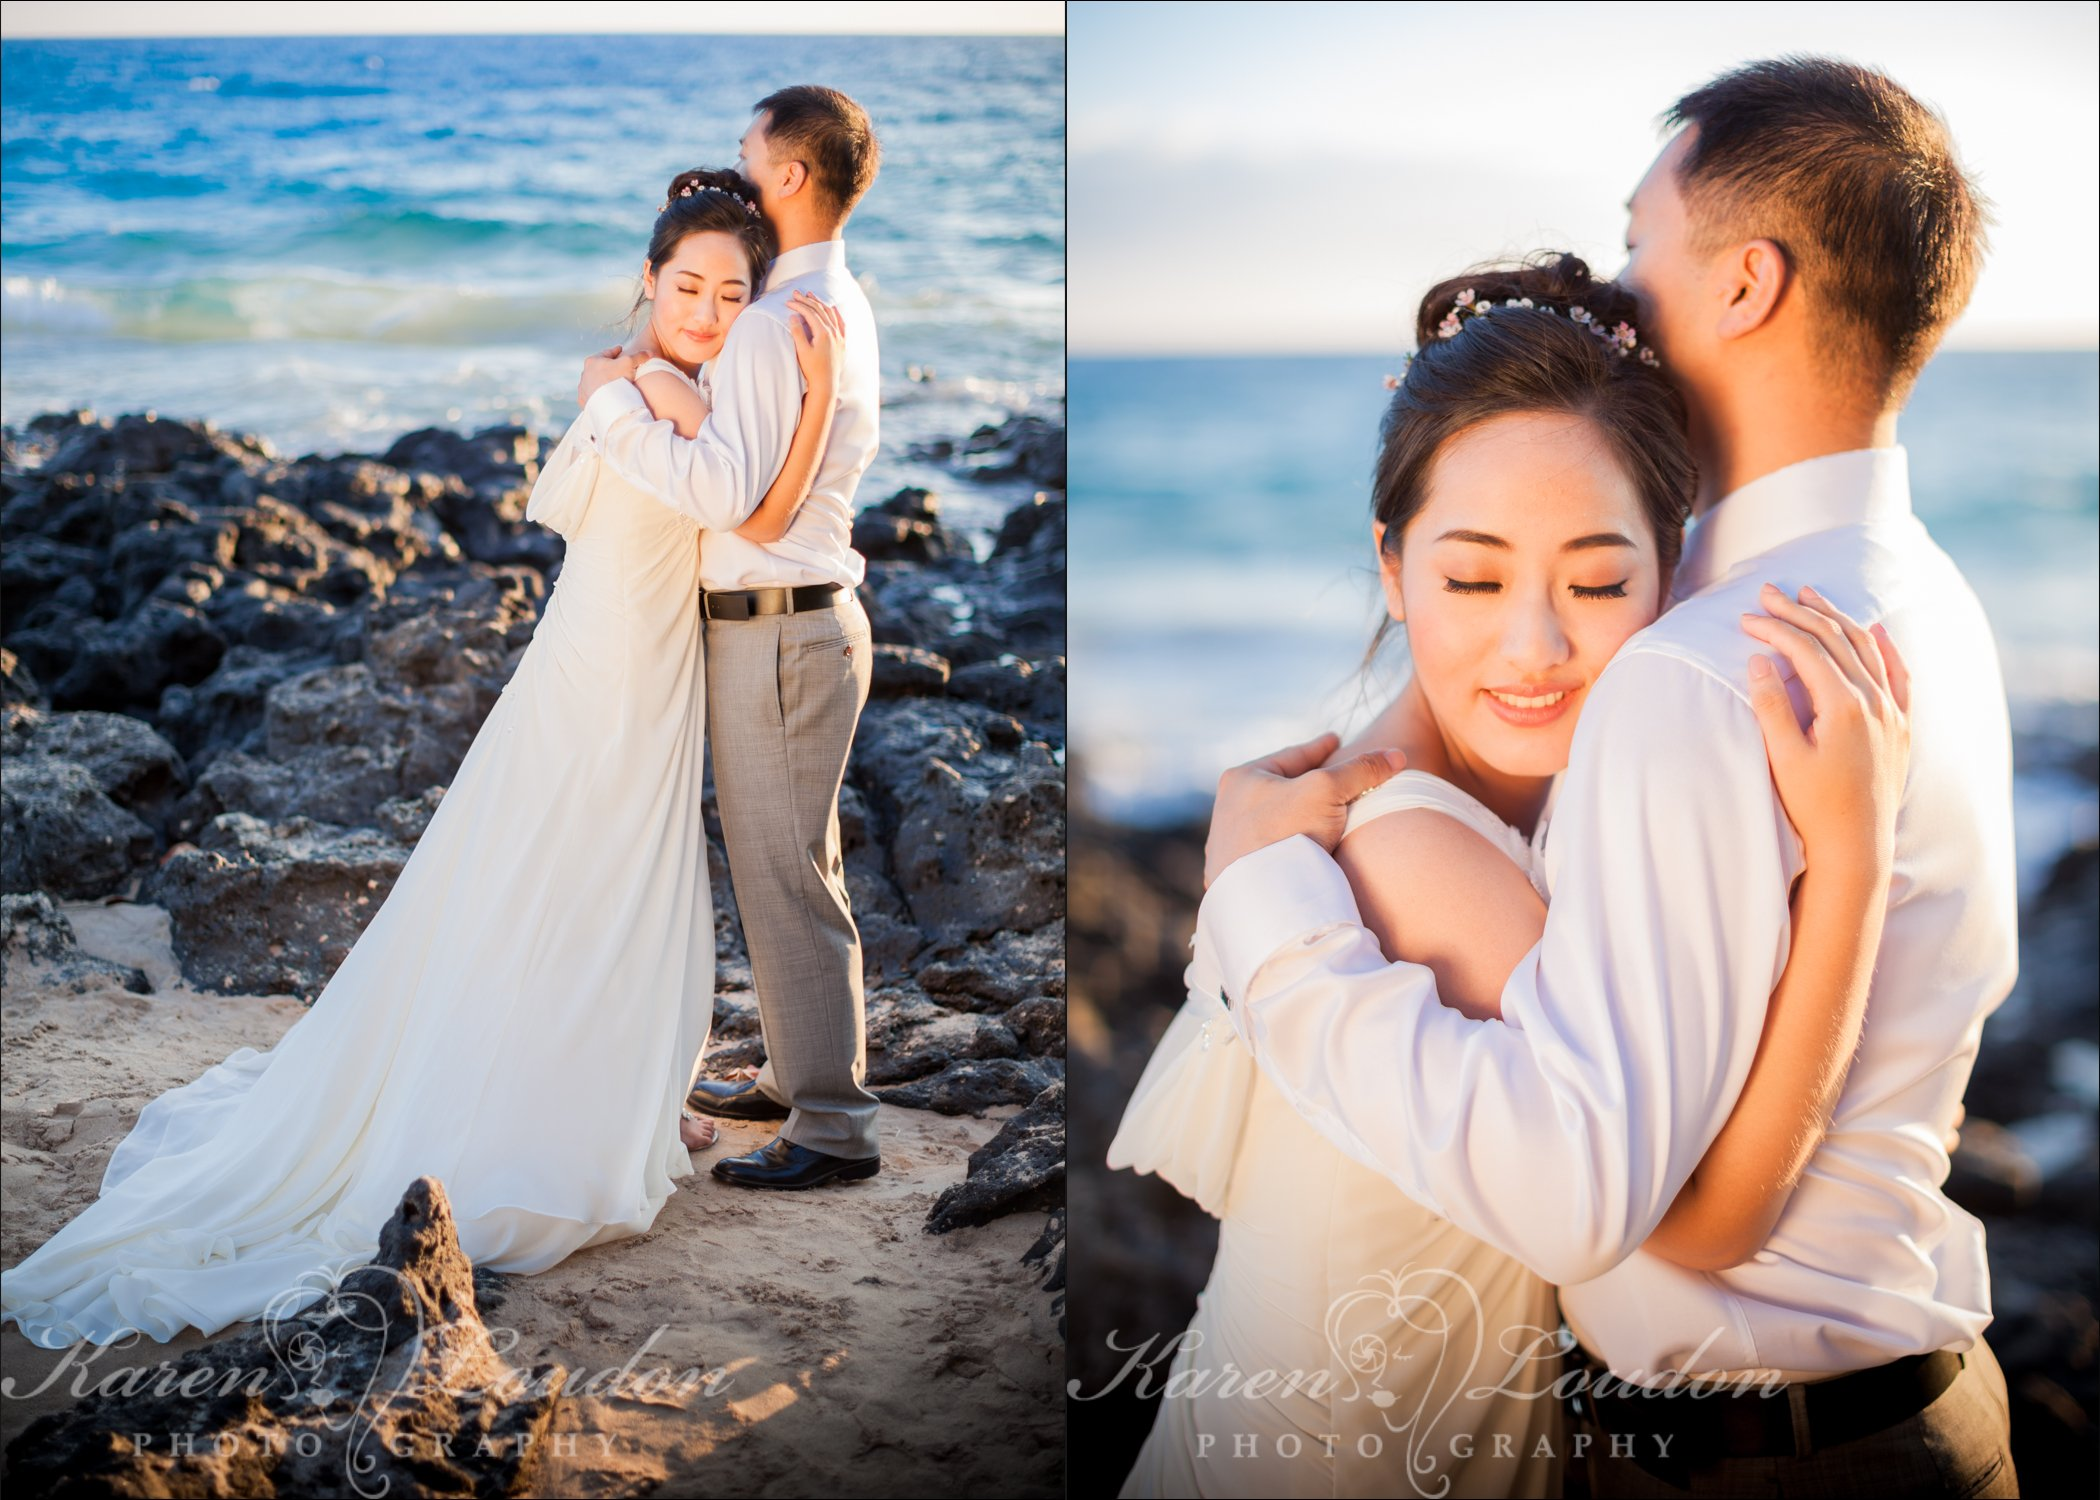 Big Island Hawaii Wedding photos